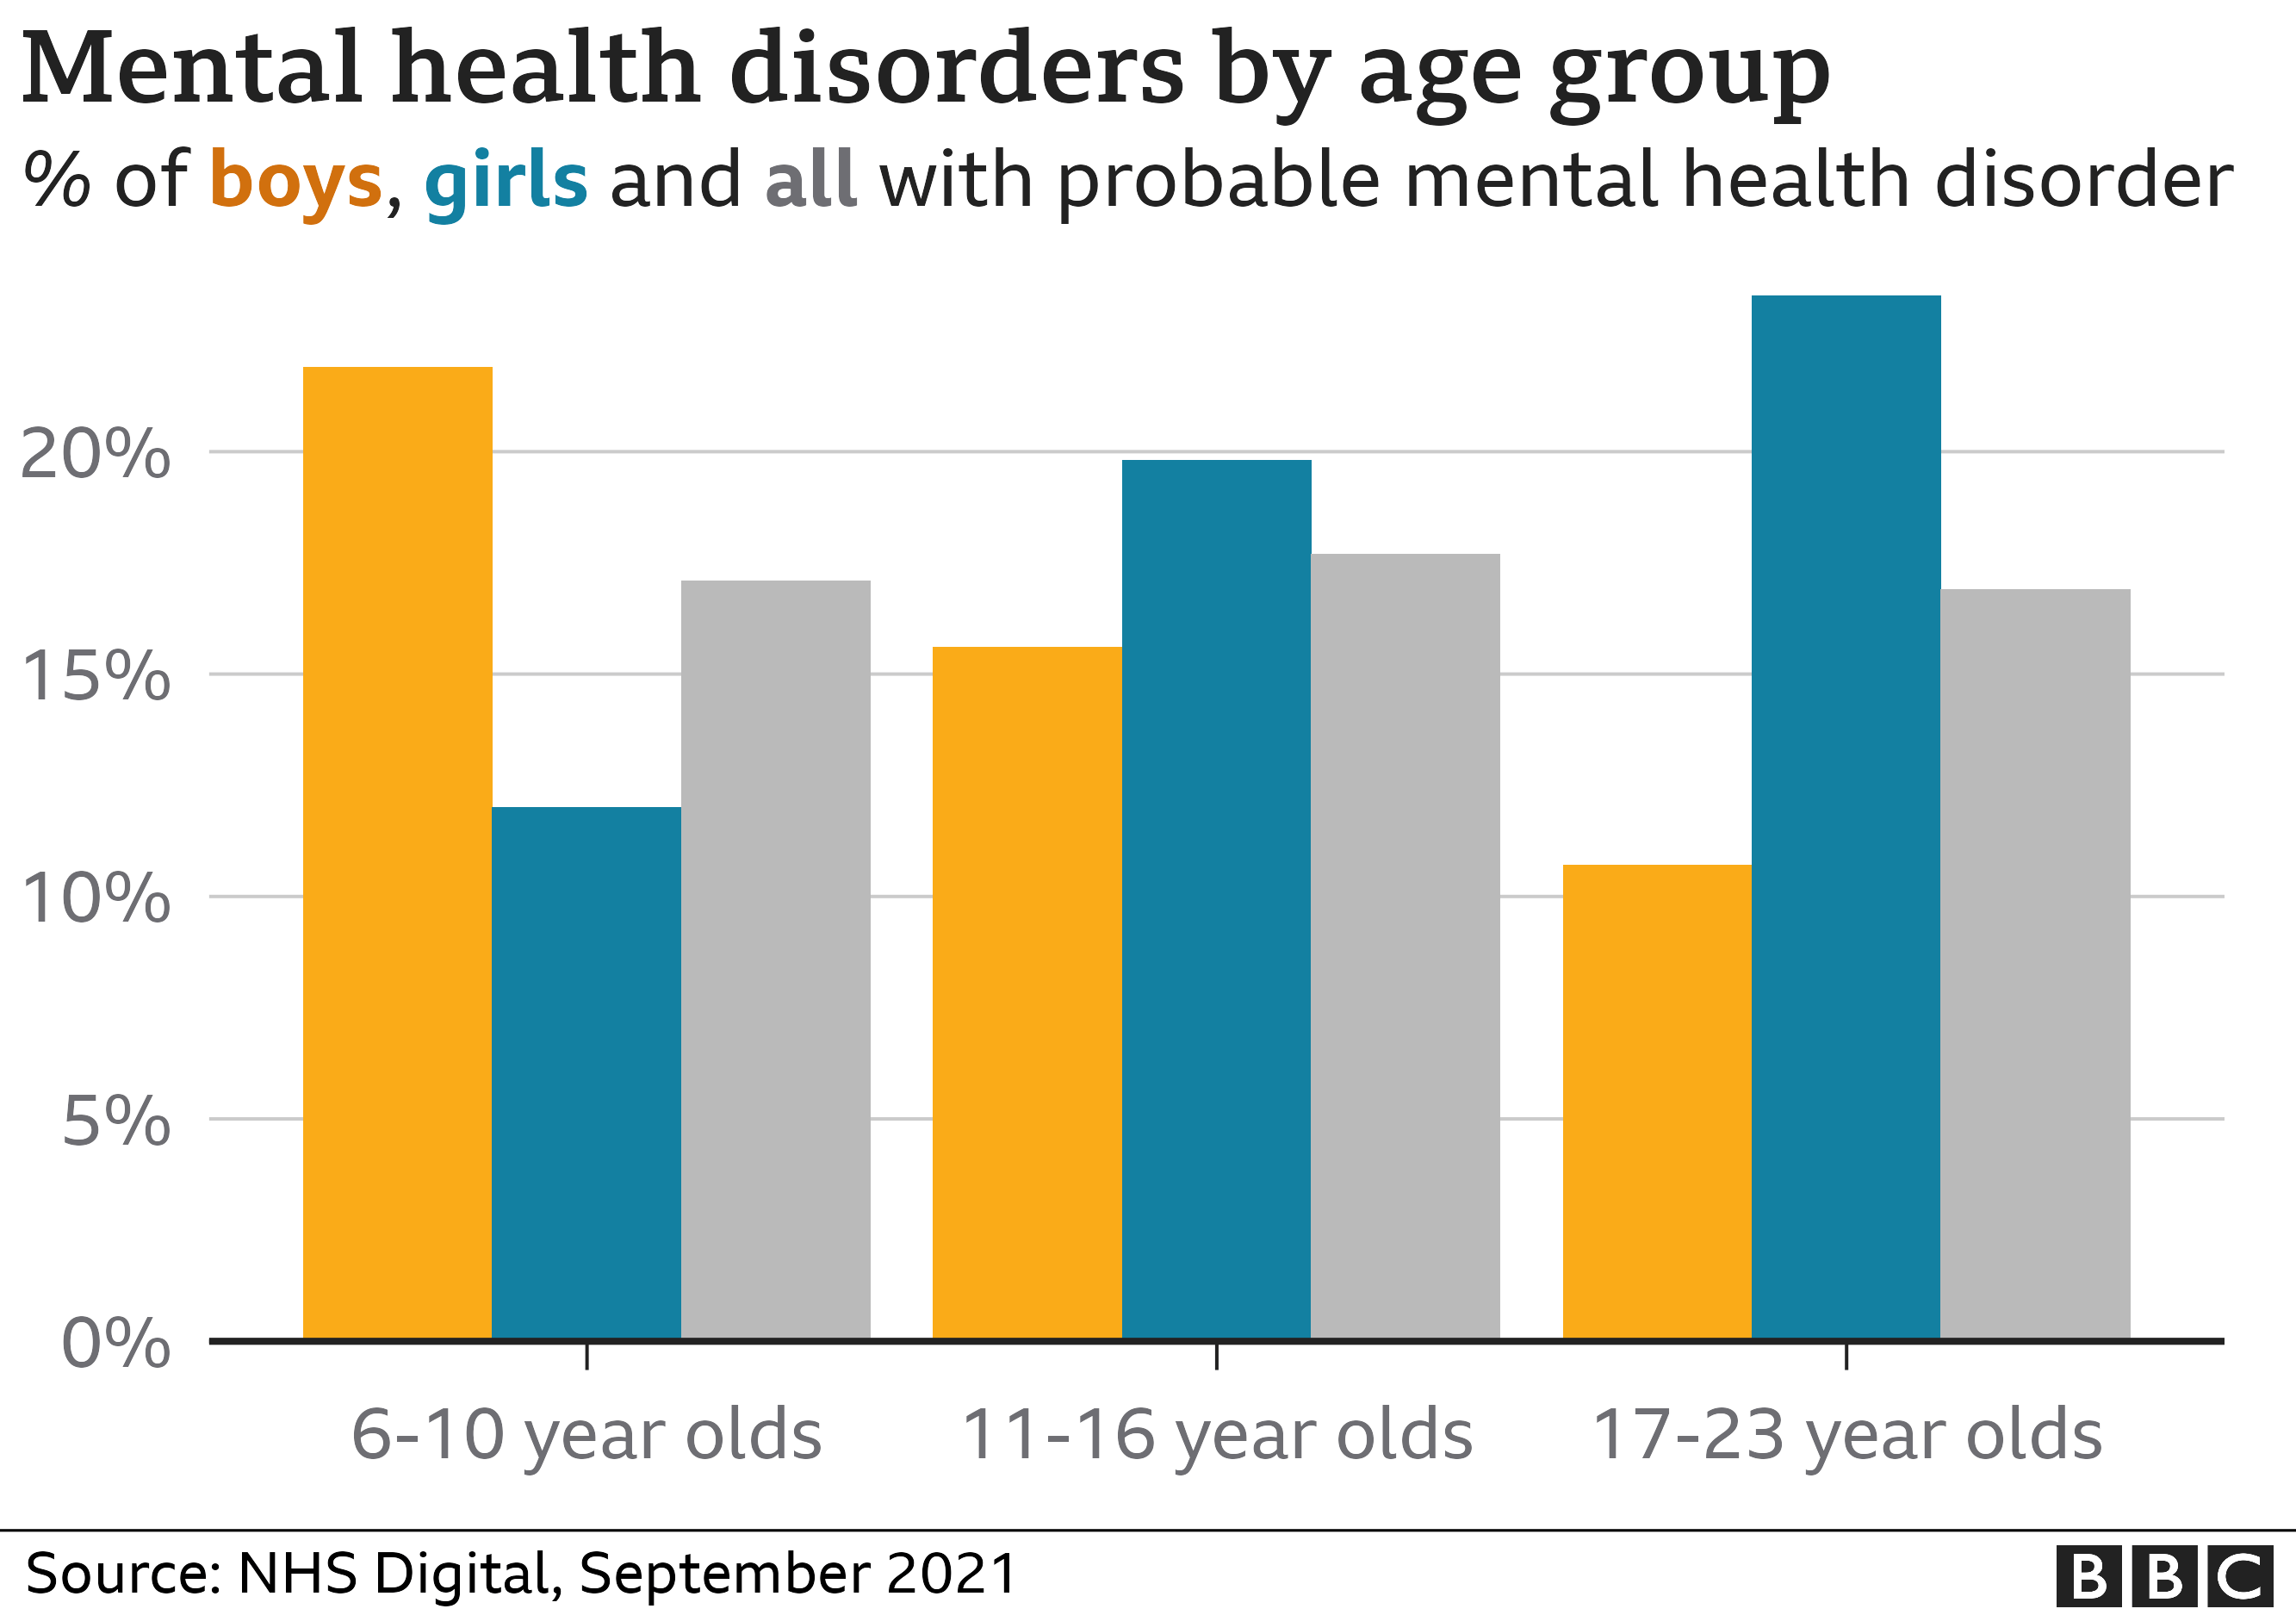 Probably mental health disorders by age group, 2021